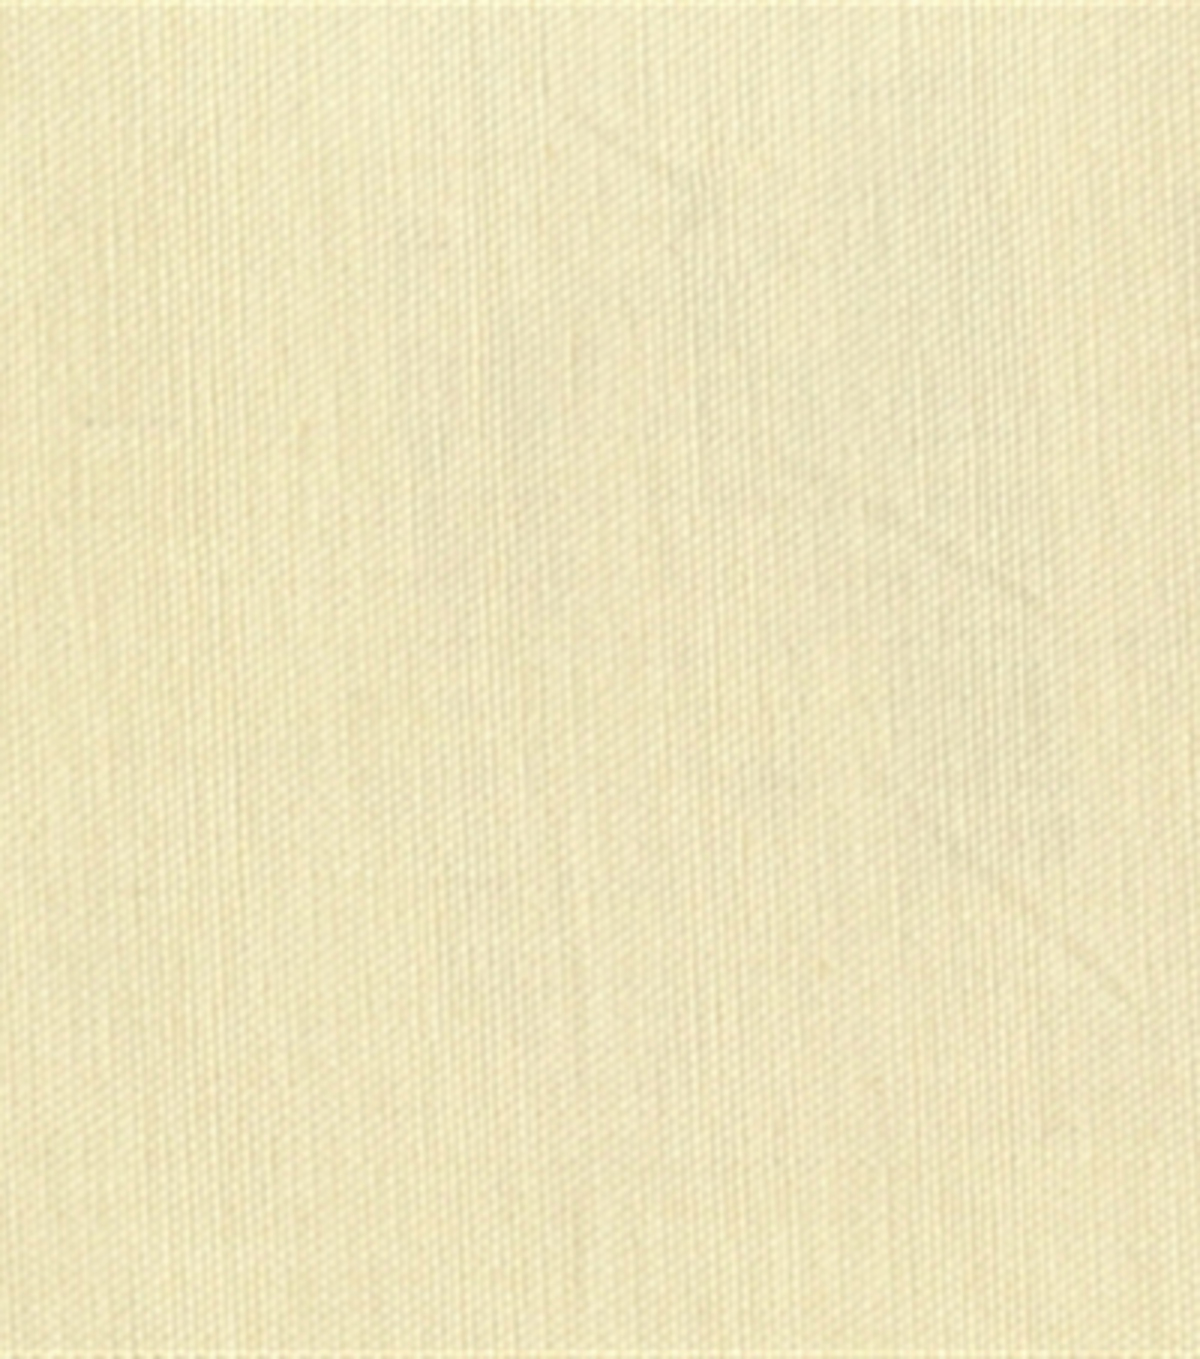 Home Decor 8\u0022x8\u0022 Fabric Swatch-Covington Spinnaker 10 Oyster